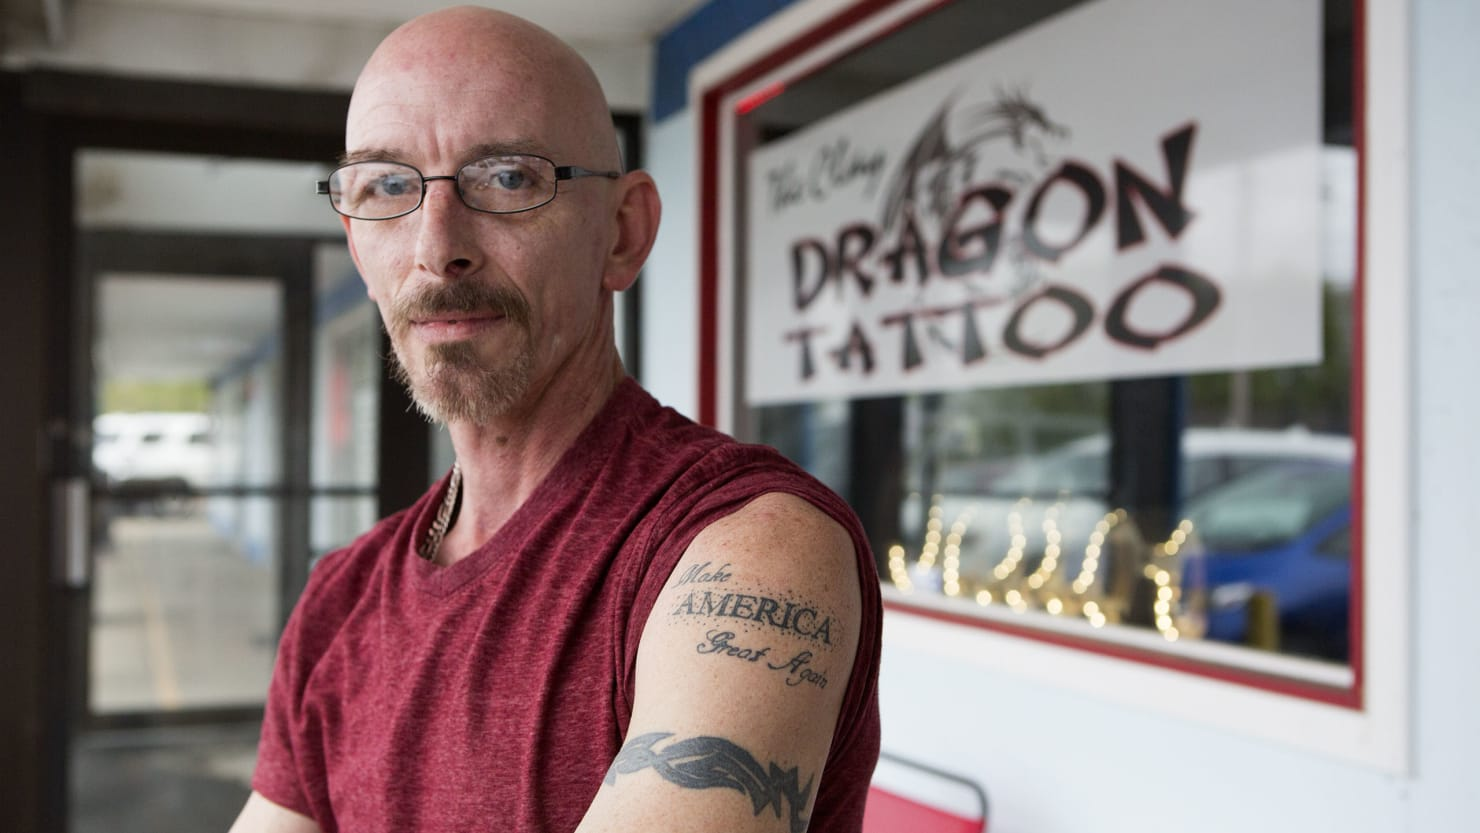 The Shop That Spawned 78 Trump Tattoos Ideas And Designs